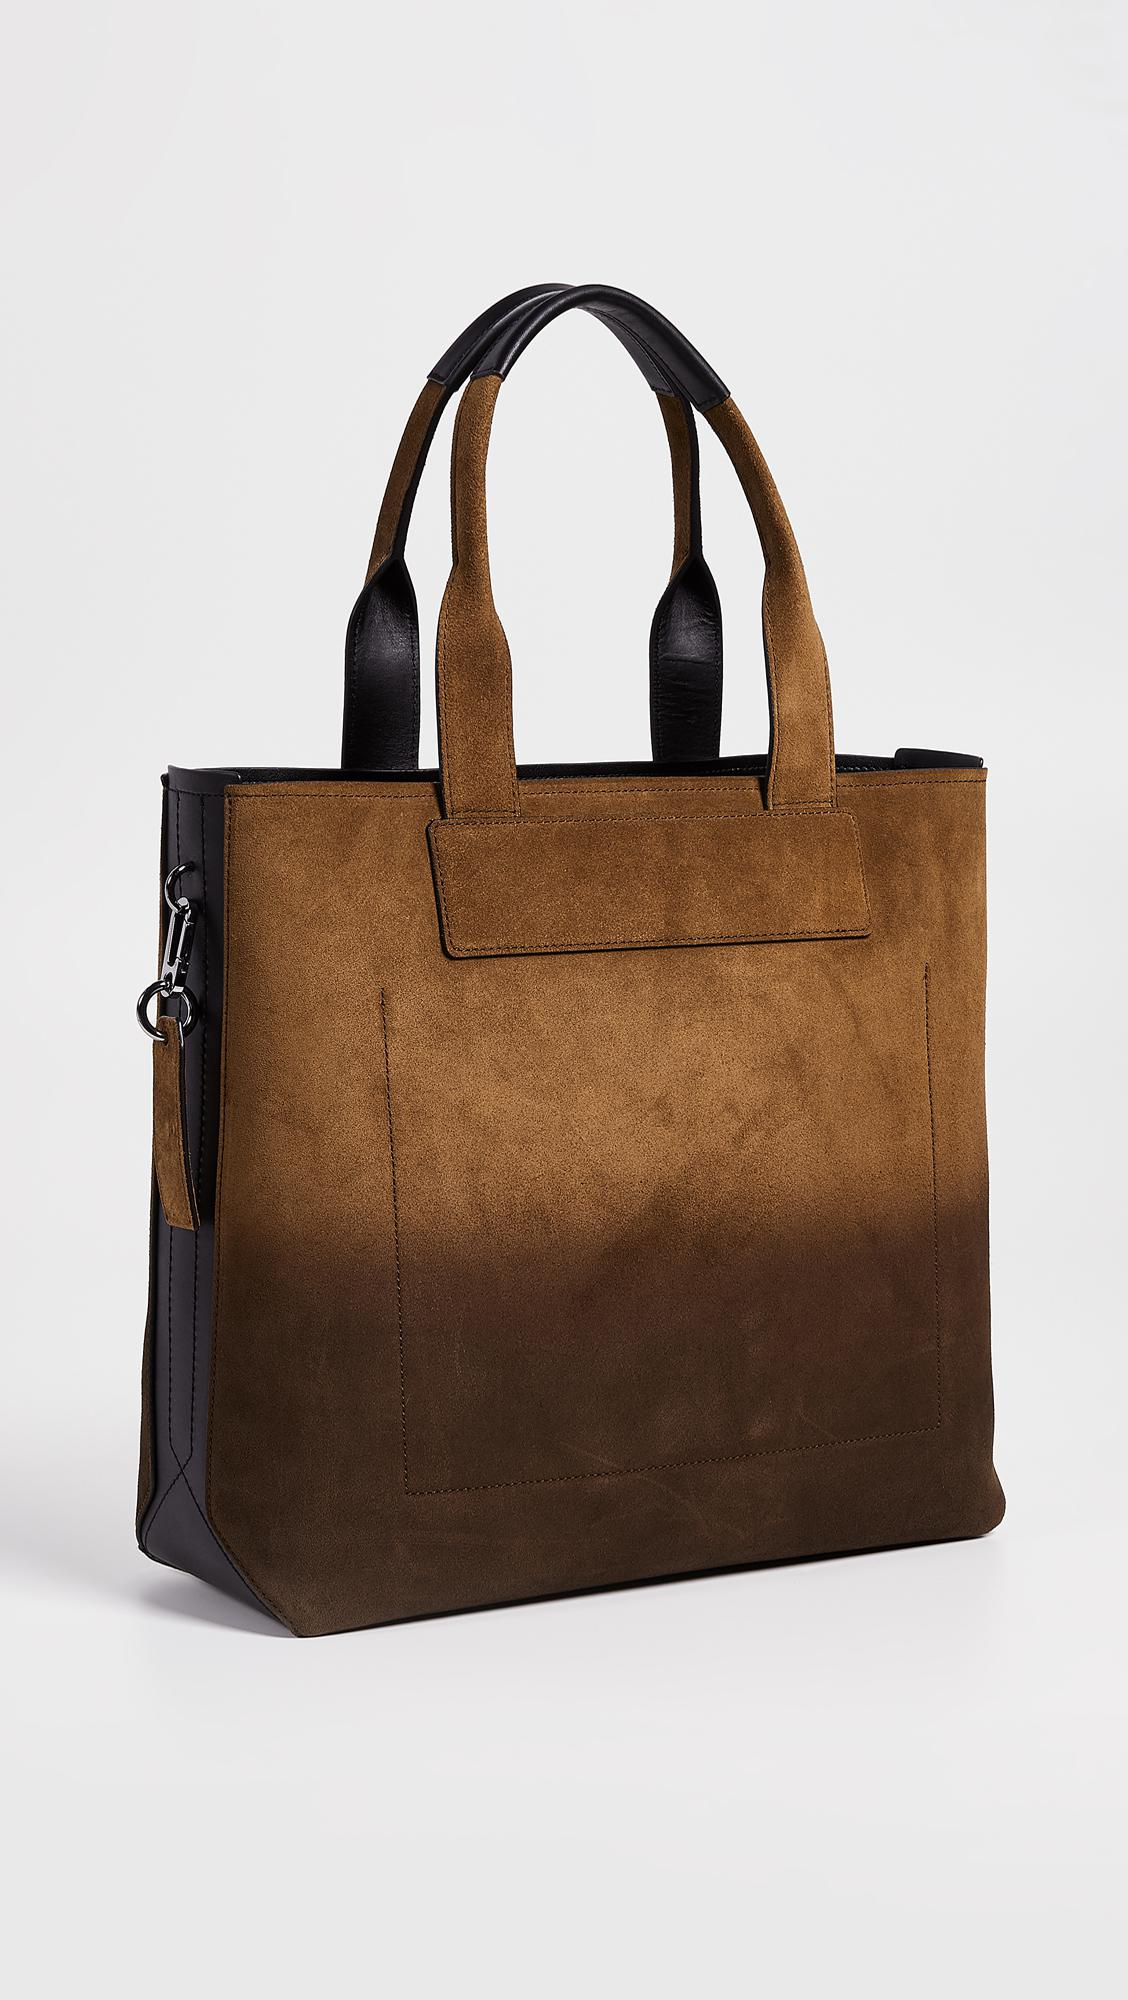 209b012a0ef9 Lyst - Michael Kors Henry Bonded Tote in Brown for Men